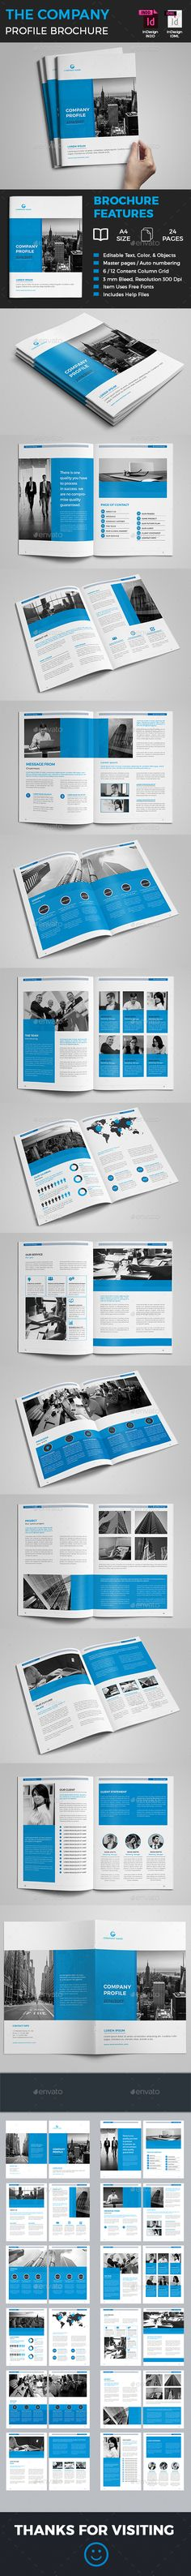 Company Profile — InDesign INDD #annual report #business brochure • Download ➝ https://graphicriver.net/item/company-profile/18970067?ref=pxcr